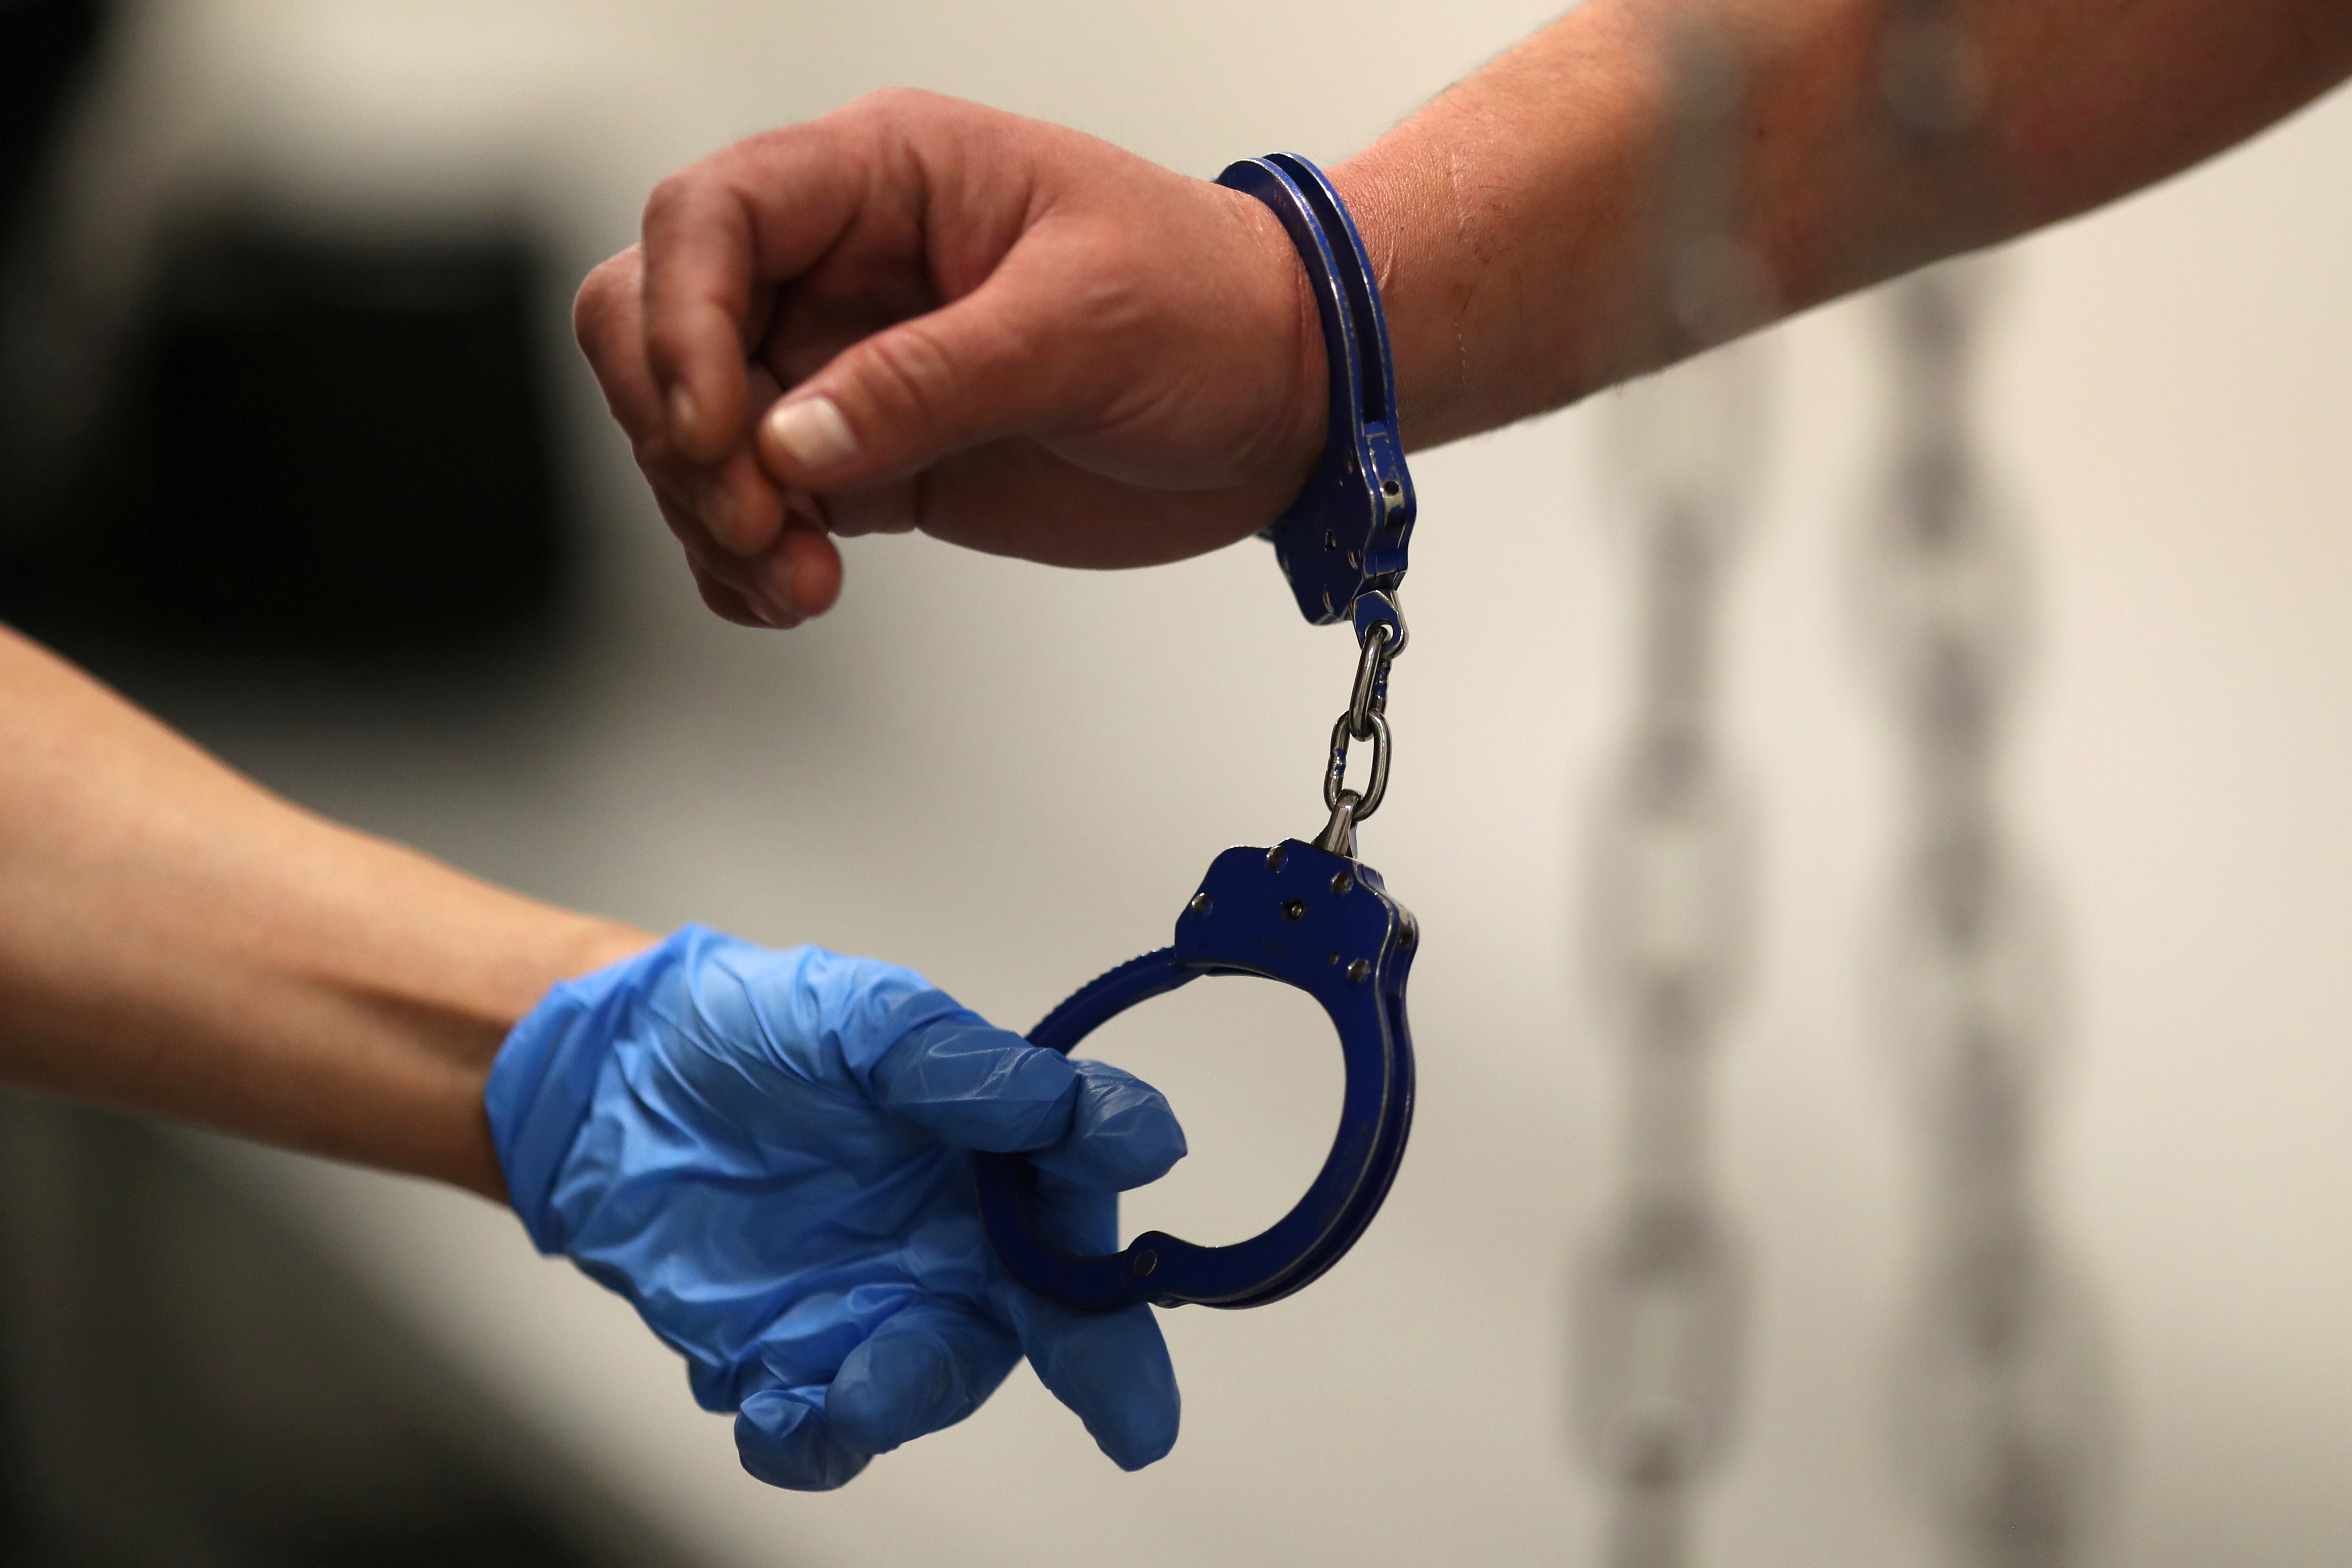 An Immigration and Customs Enforcement's (ICE) Fugitive Operations Agent takes handcuffs off before booking an immigrant in Los Angeles, California, U.S., March 1, 2020. REUTERS/Lucy Nicholson